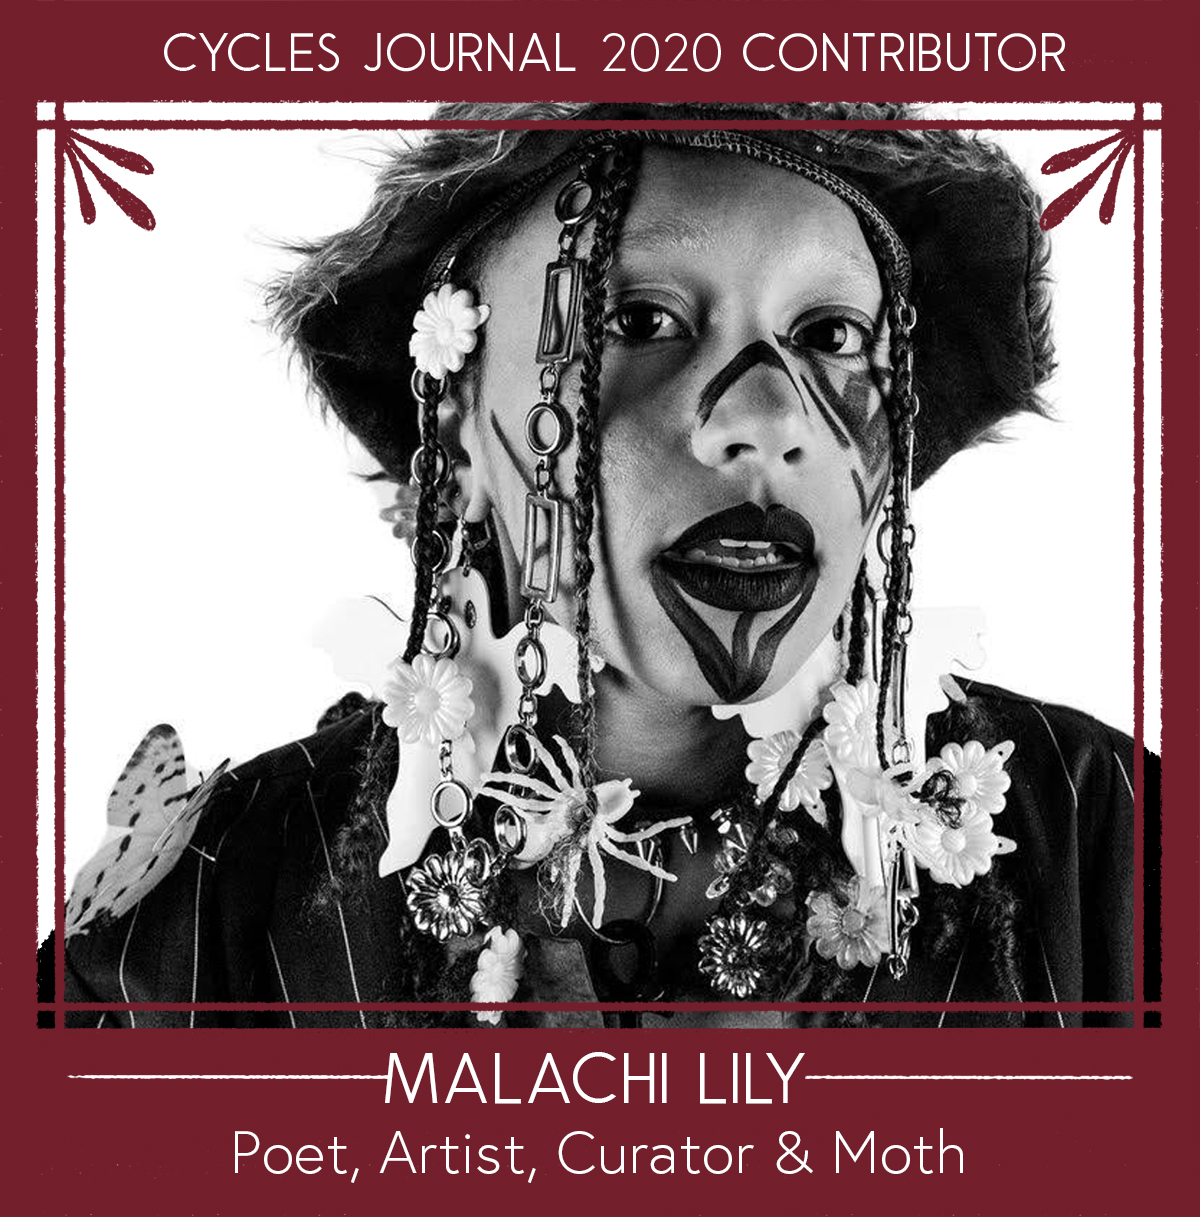 Malachi Lily - Poet, Artist, Curator & MothMalachi Lily is a shapeshifting, non-binary, black poet, artist, curator, and moth. They connect to the collective unconscious via energy work, Active Imagination, mysticism, myth, magick, folklore, and fairy tales. This channeling often takes the form of poetry, illustration, curation, and the aesthetic arts. Malachi is a liminal being of race, gender, artistic practice, and existence reclaiming the spiritual body of black and brown people. Their work offers methods to break these individual barriers and reveals the symbols, archetypes, emotions, and lessons that exist in everyone as a collective consciousness to support in transformation and the remembrance of who we are.Social: @theholyhawkmoth @hawkmotheventsWebsite: maggielily.comEmail: maggielily (@) maggielily.com